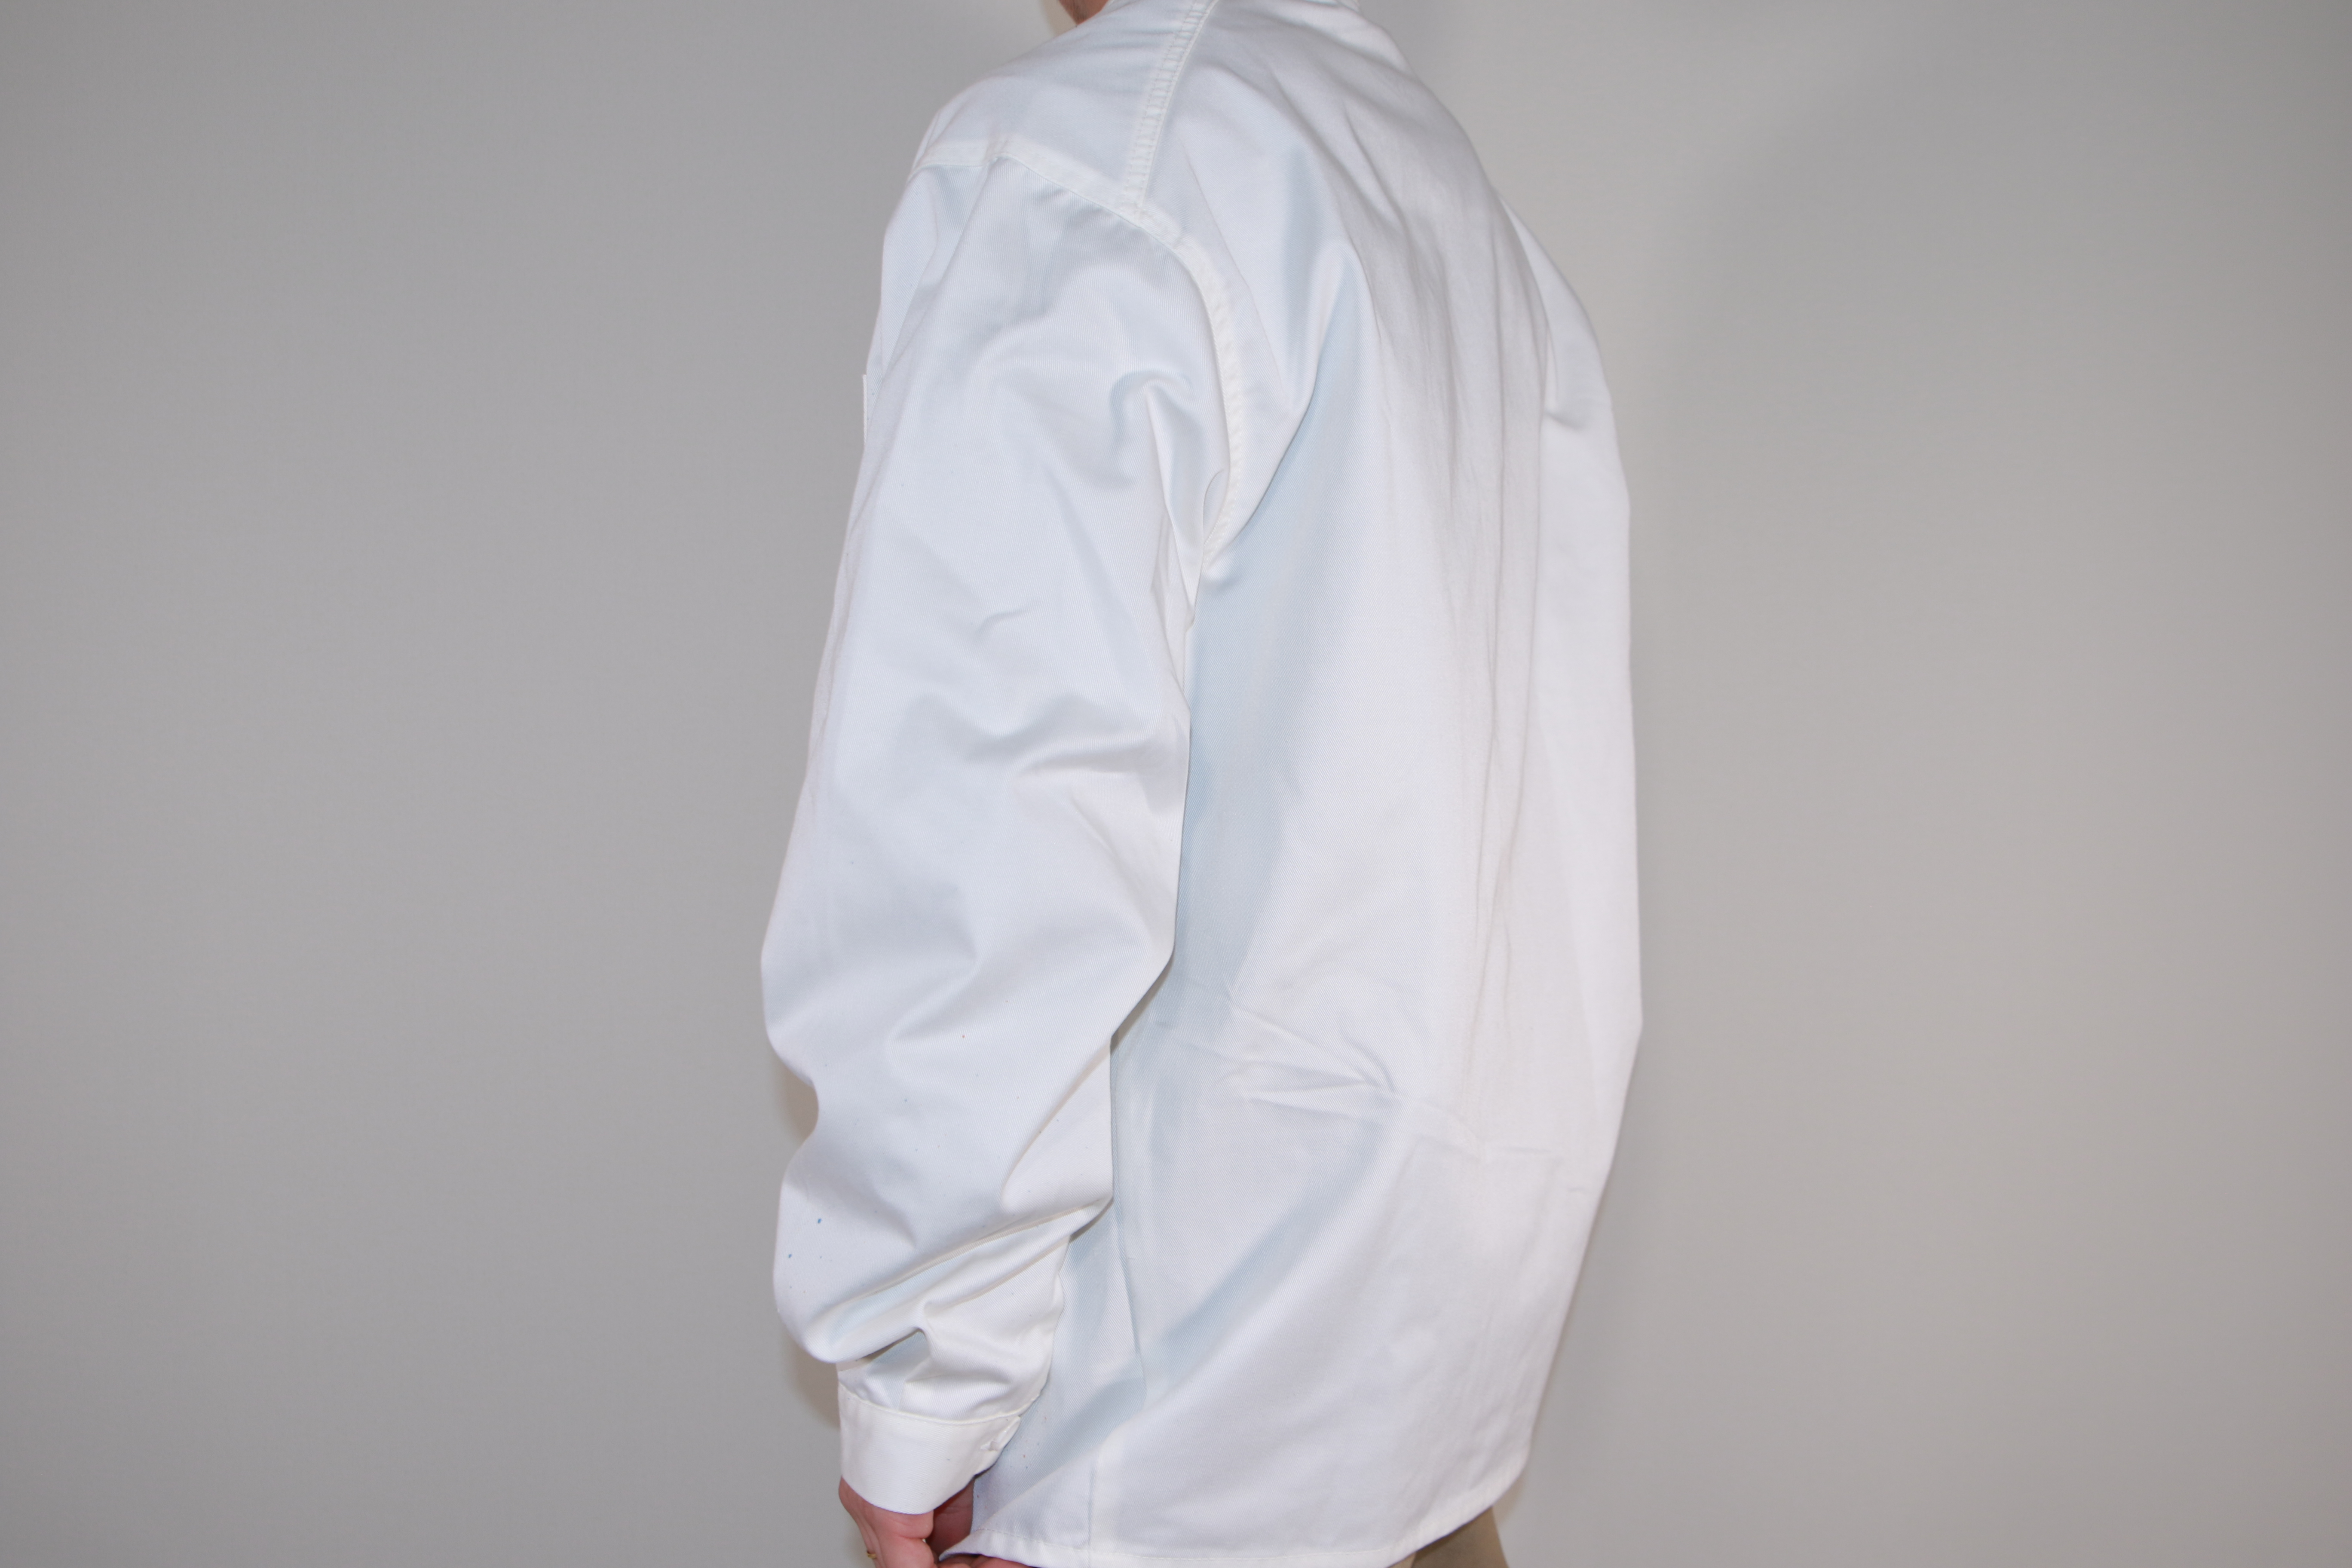 KB Paint French Work Jacket [OFF WHITE]